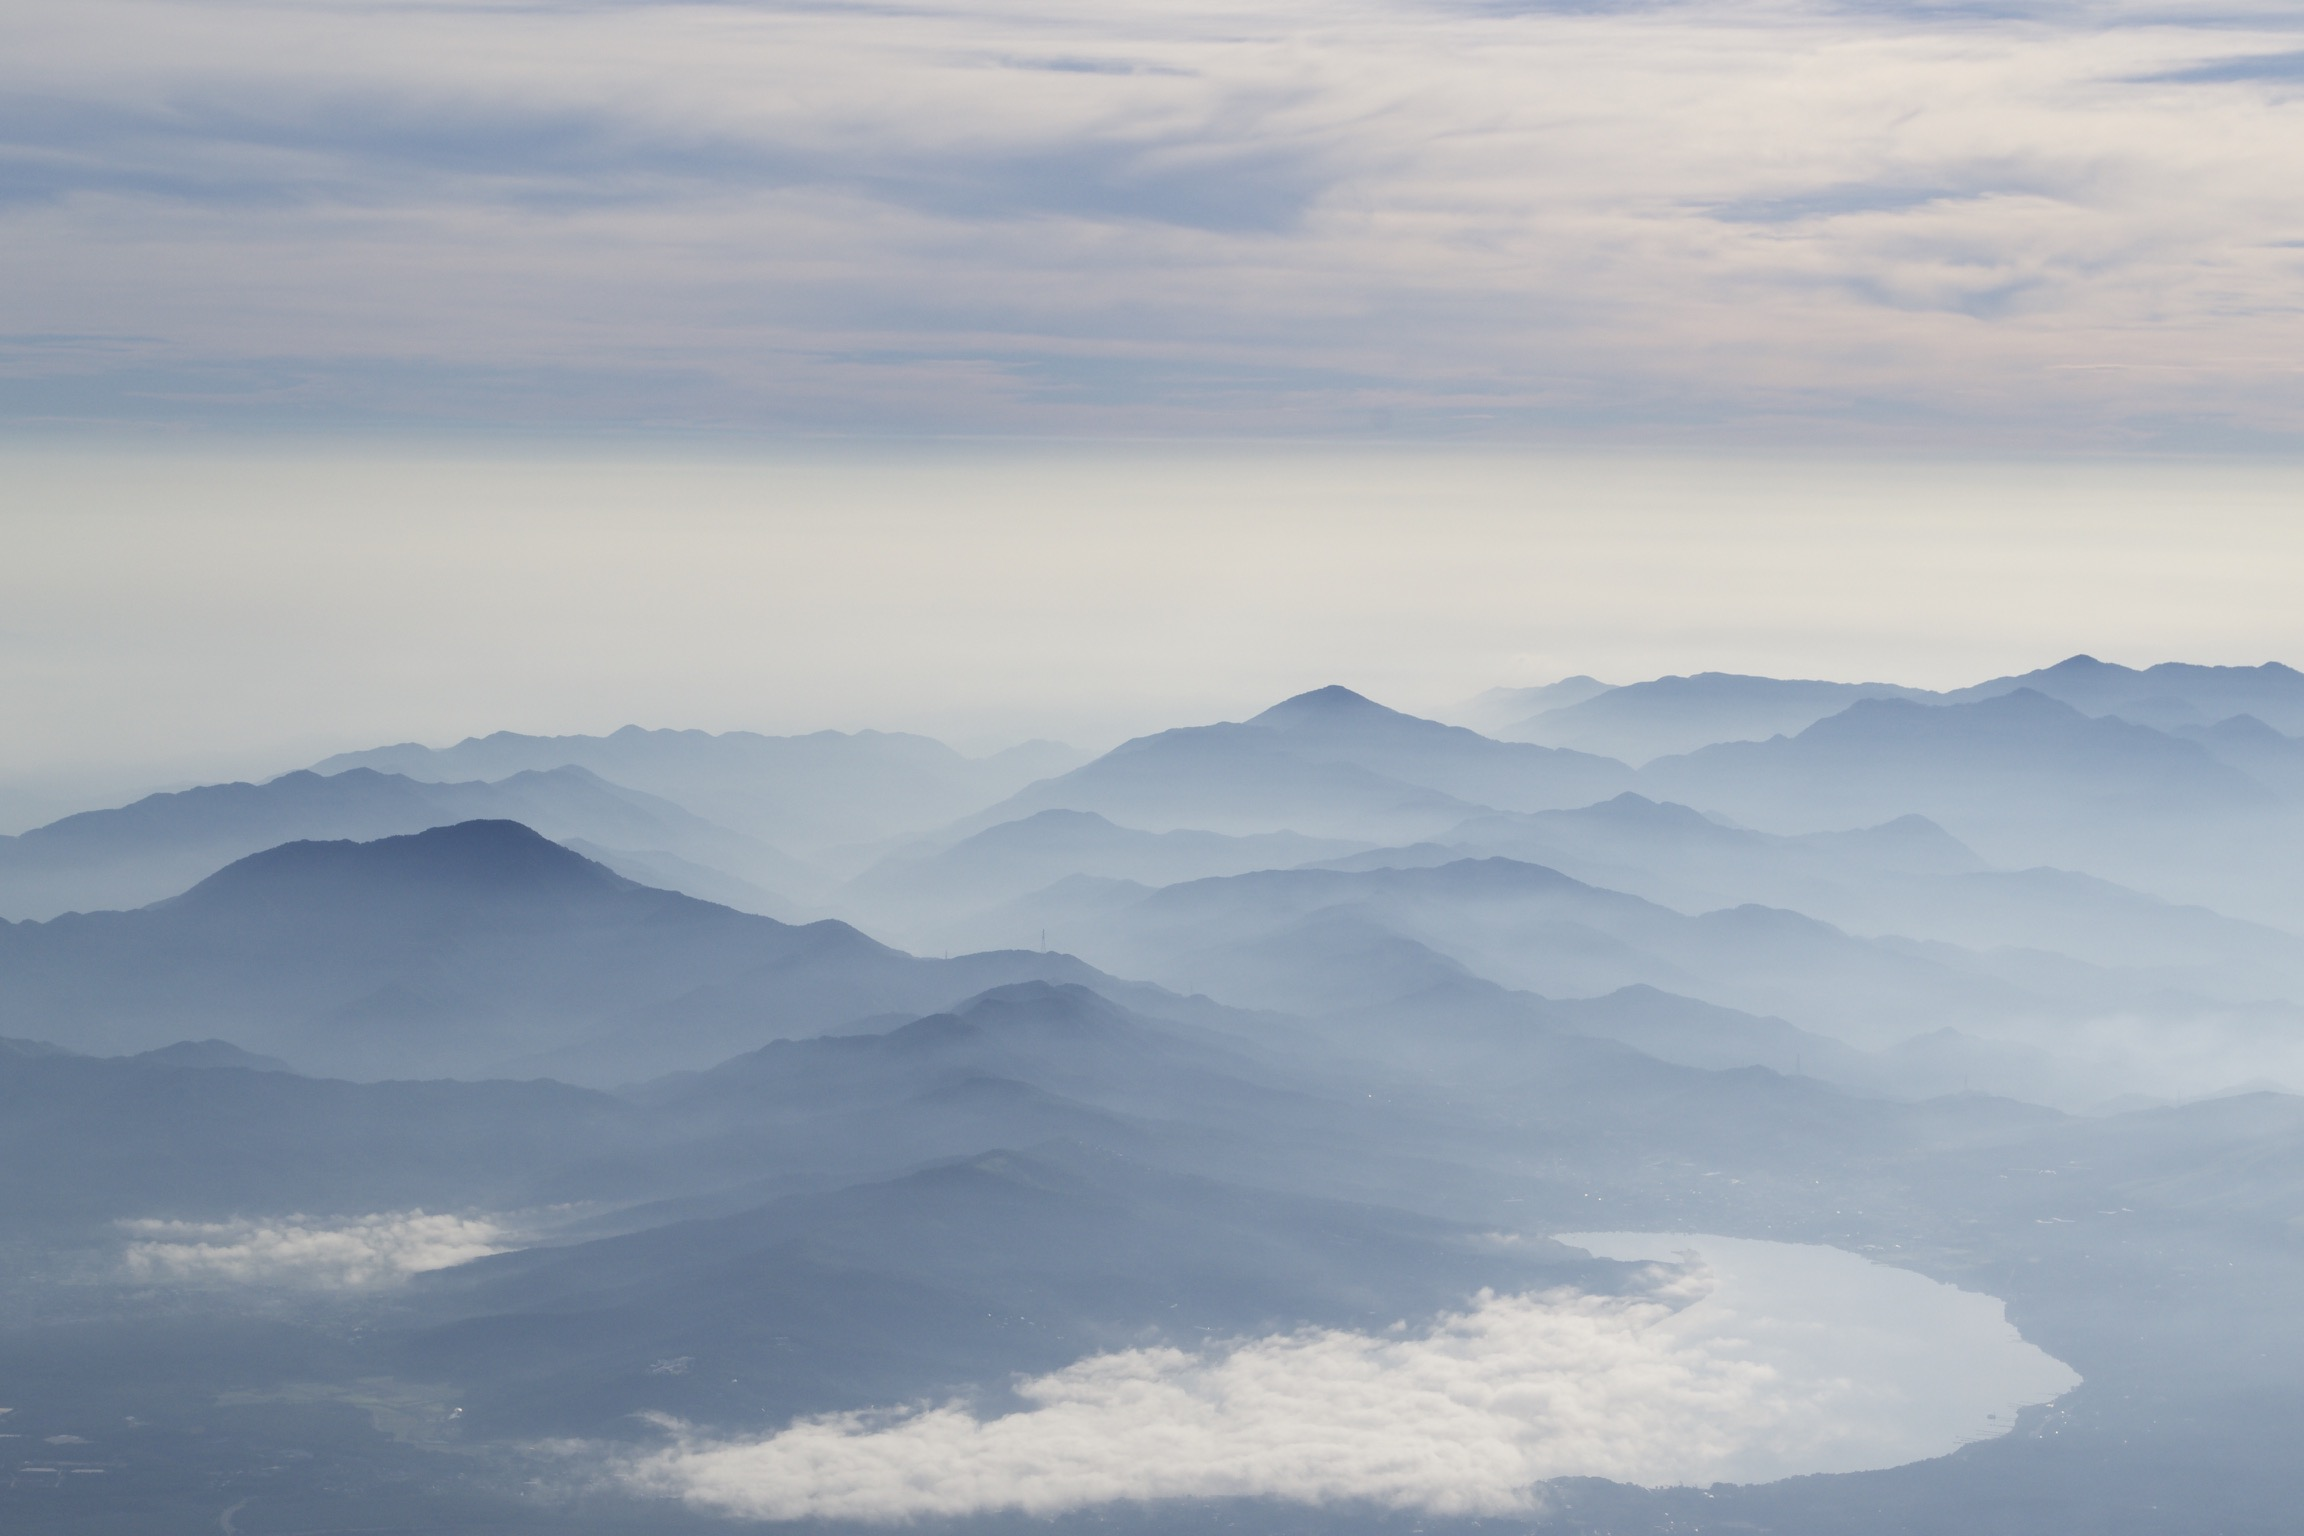 Silhouettes of mountains beneath a cloudy, pastel blue sky.